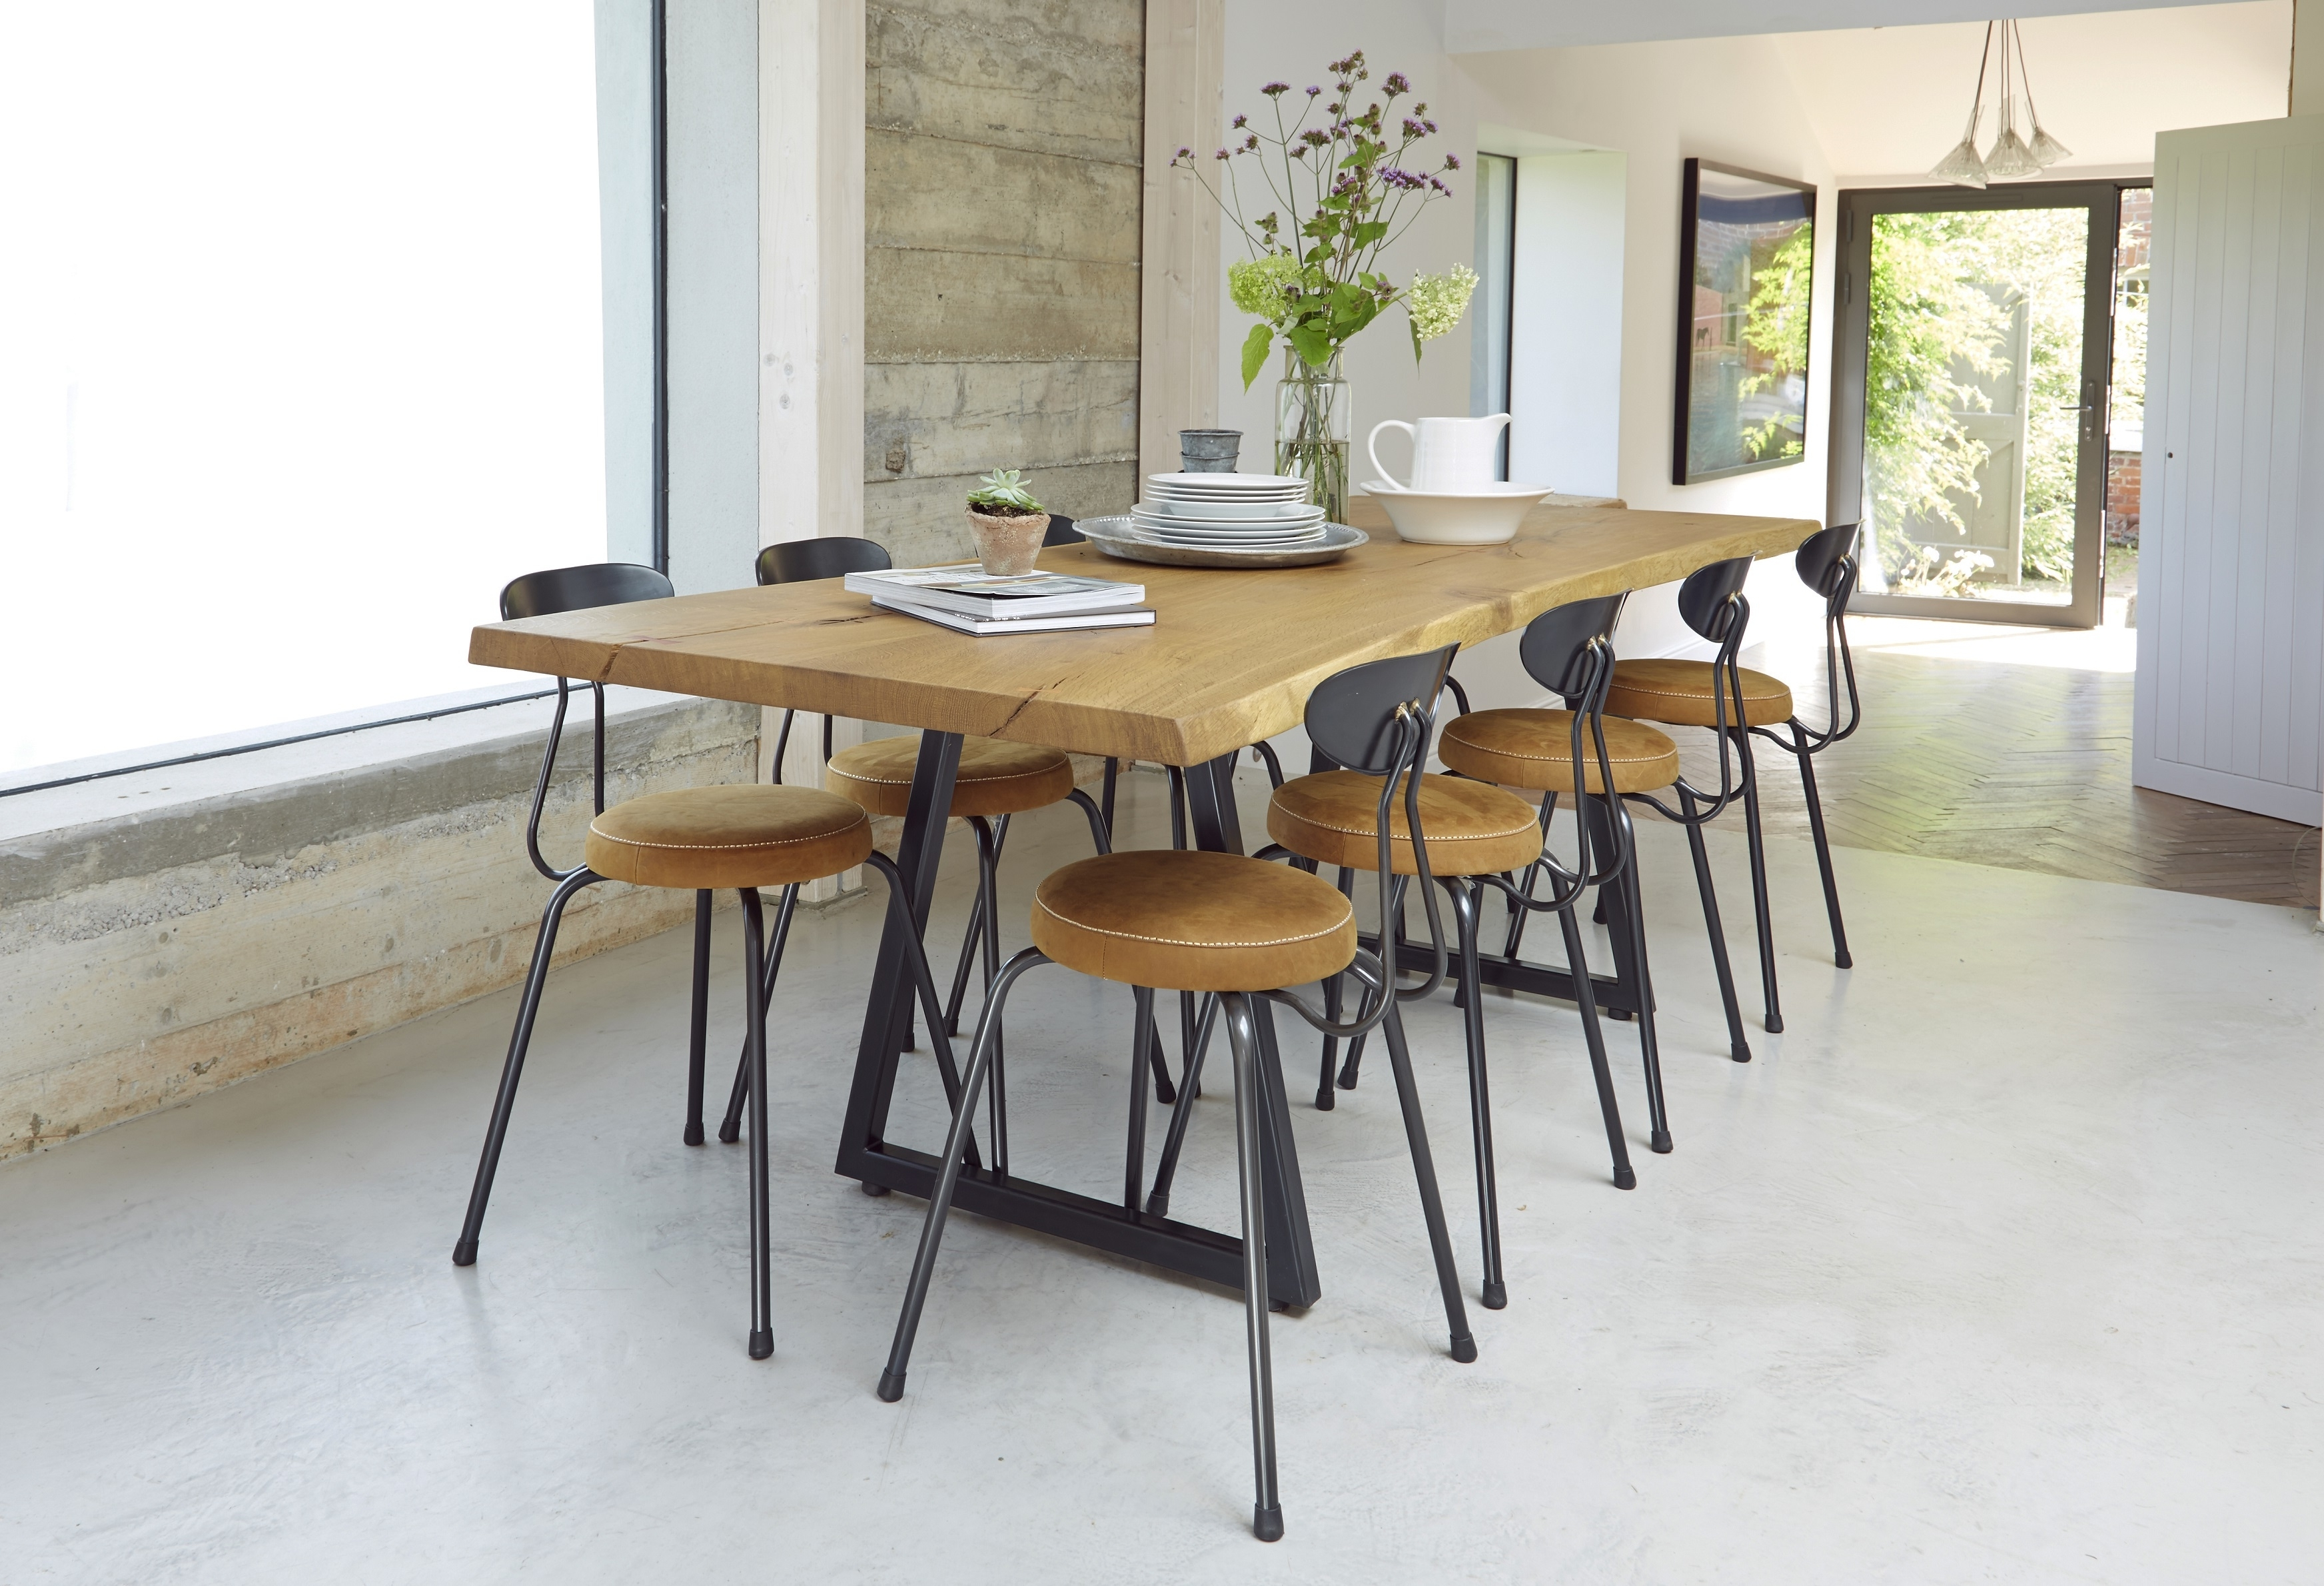 8 Seater Oak Dining Tables In Favorite Dining Room Table : Square Oak Dining Table For 8 Modern Dining (View 10 of 25)